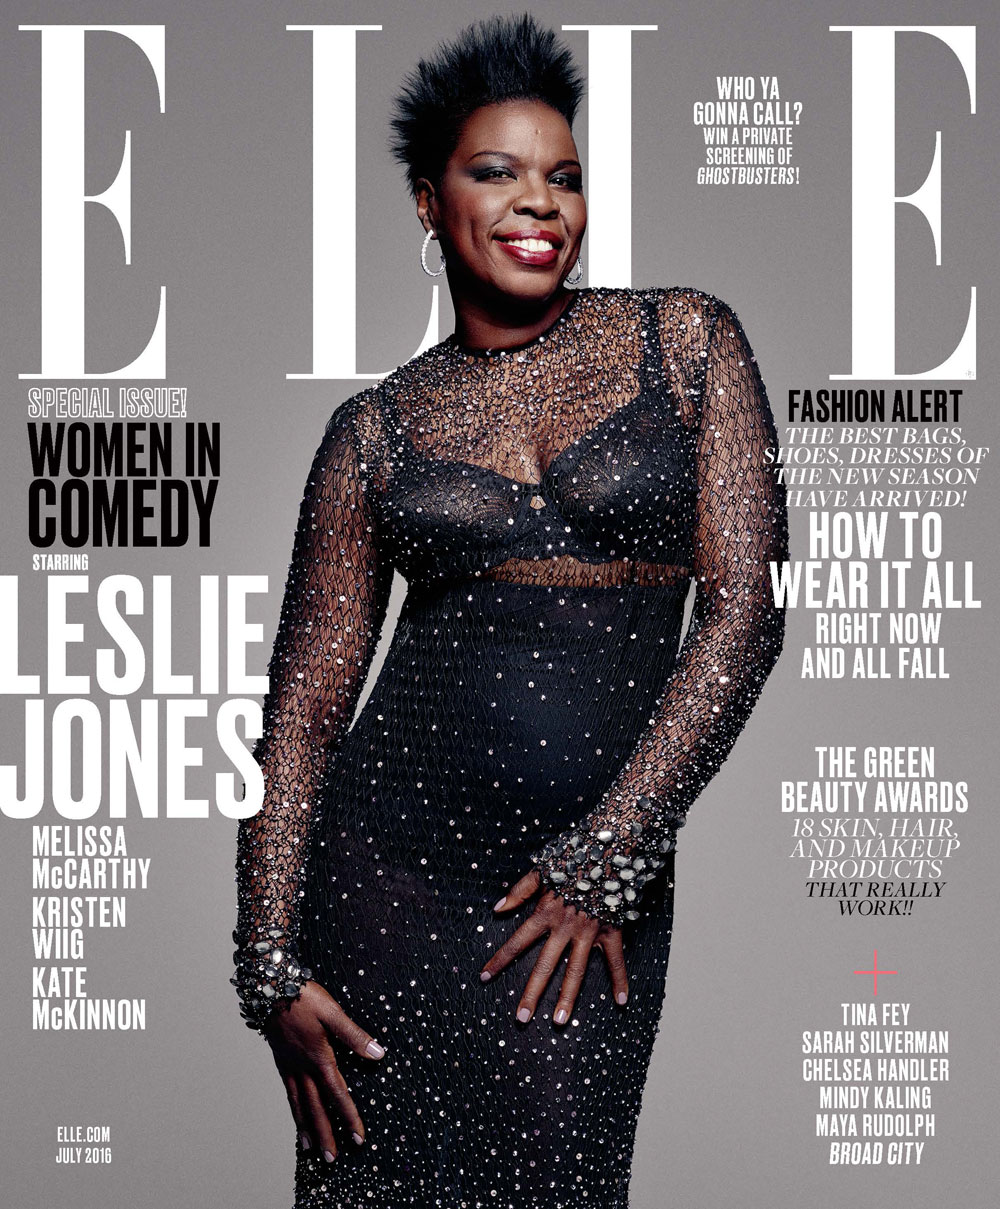 Leslie Jones, photo by Mark Seliger, styled by Samira Nasr - ELLE July 2016